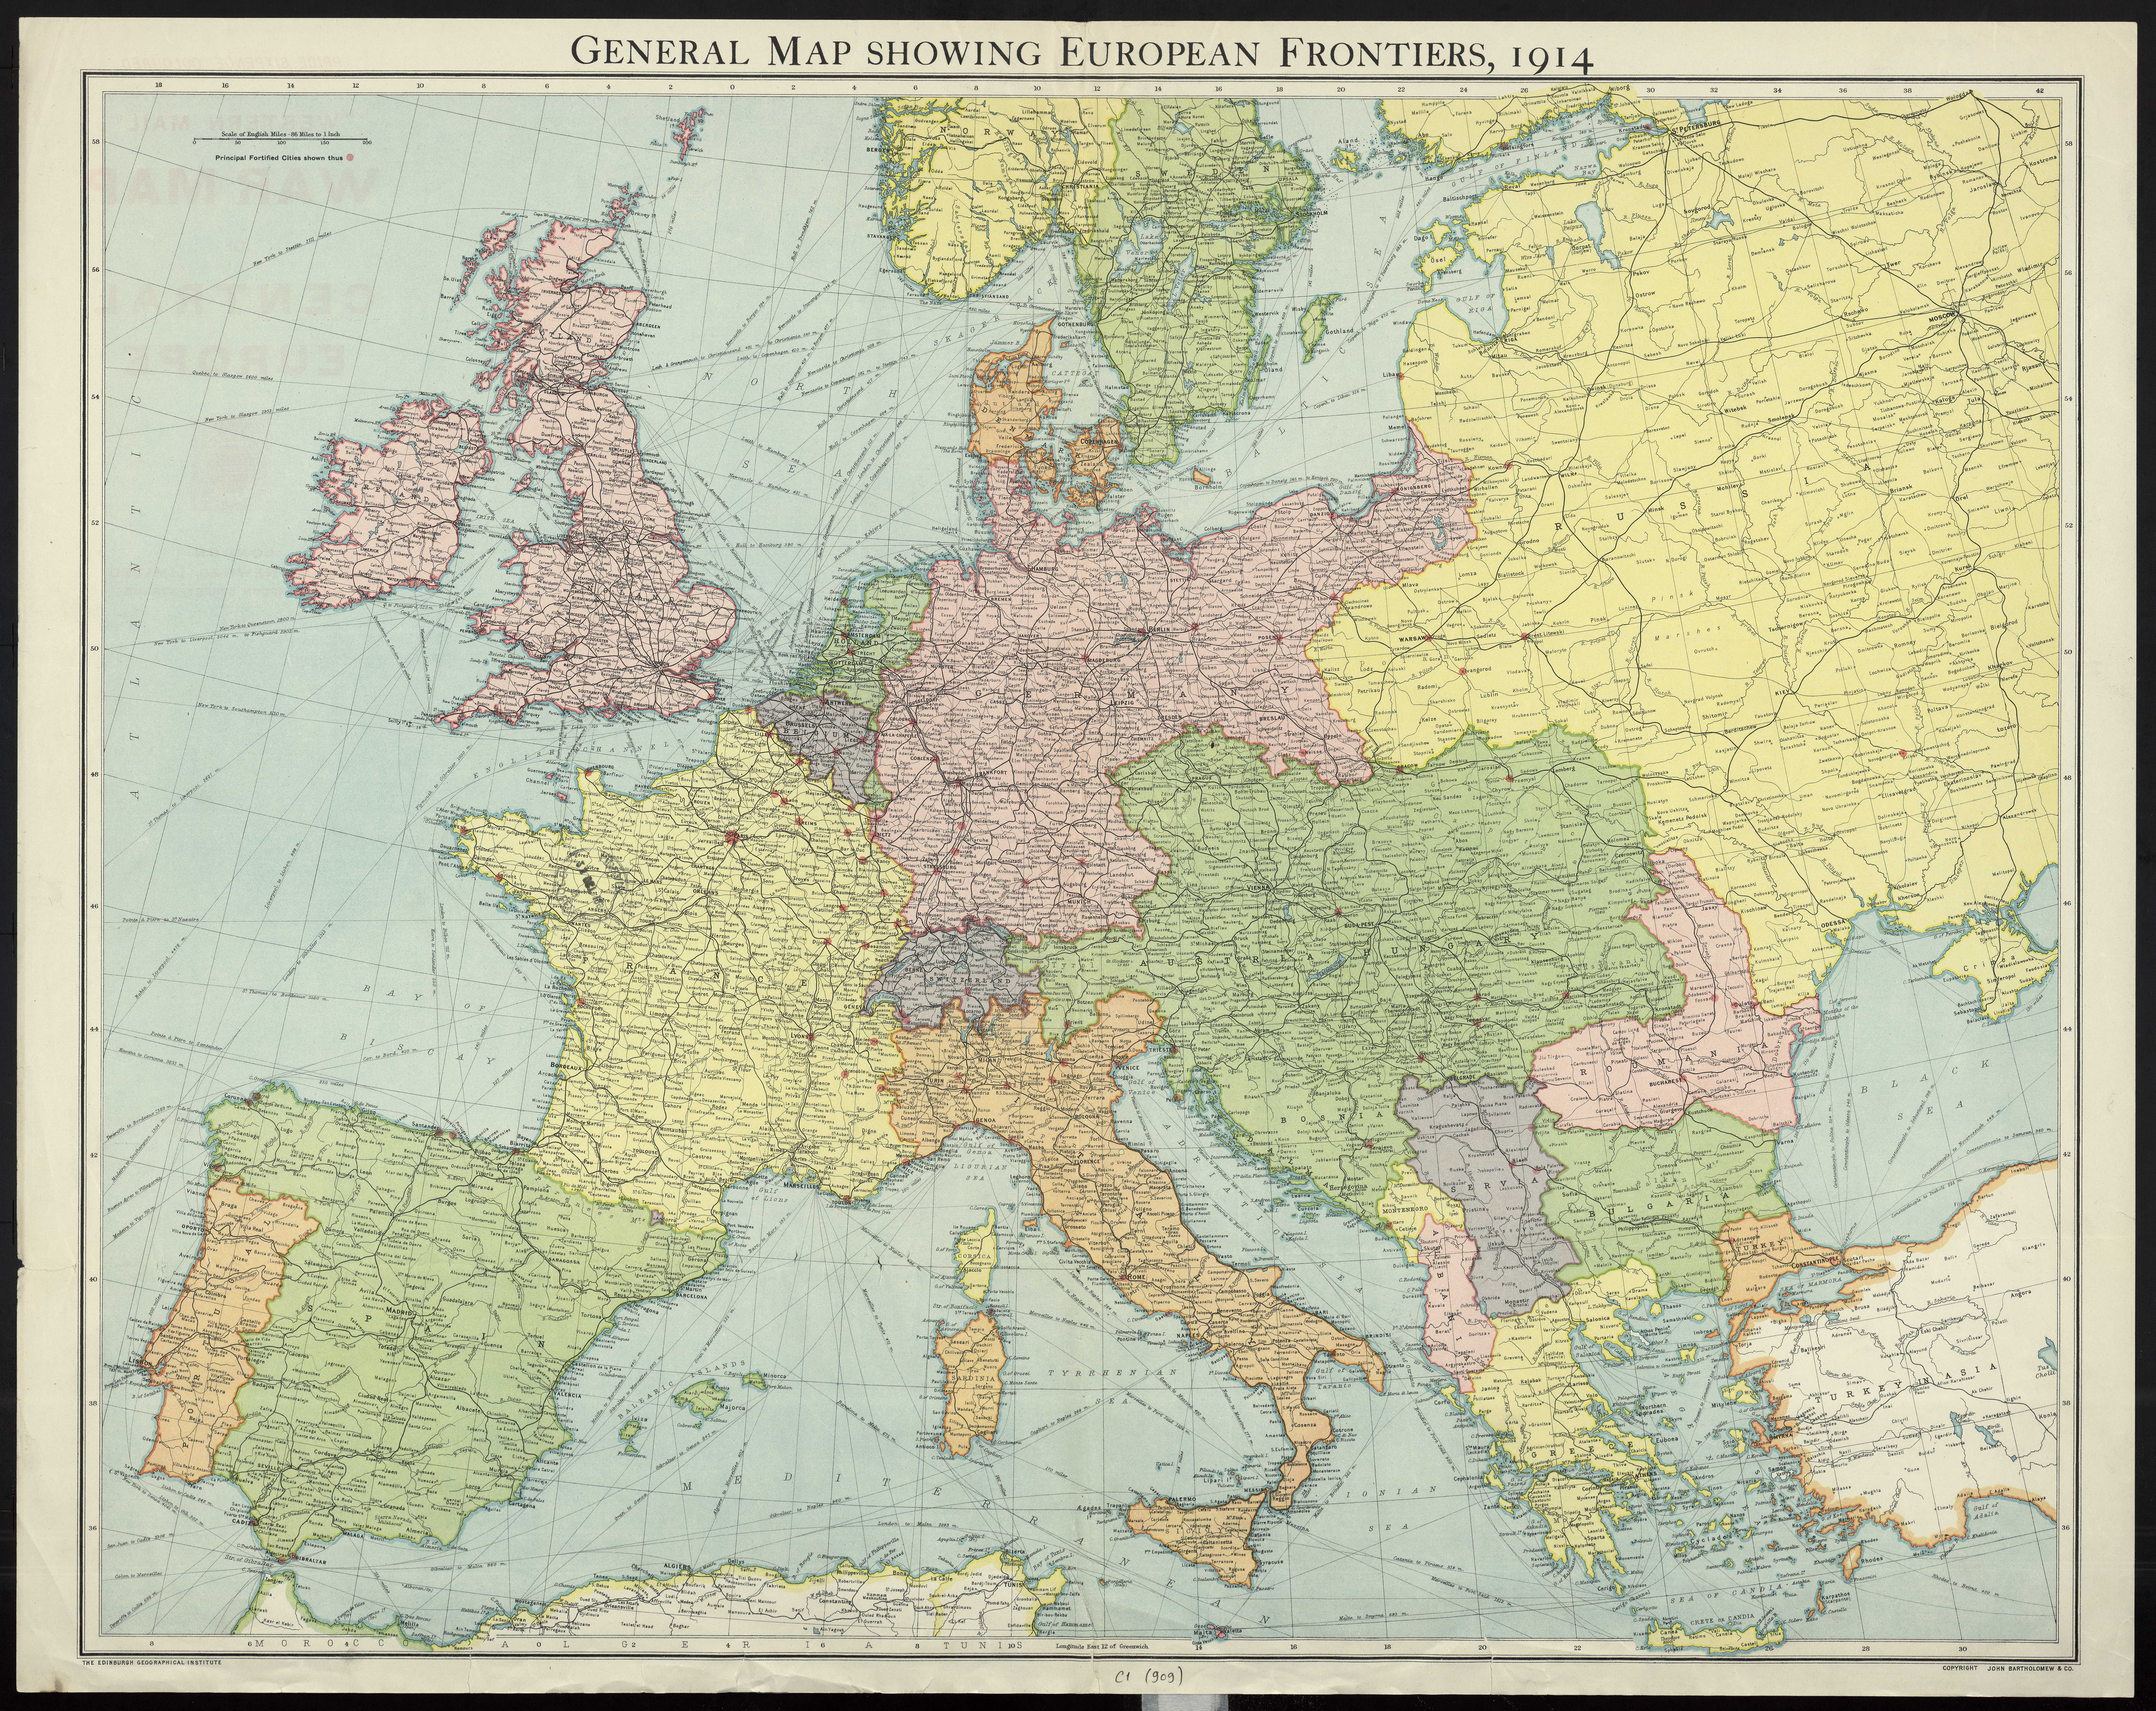 Image of map of European countries in 1914